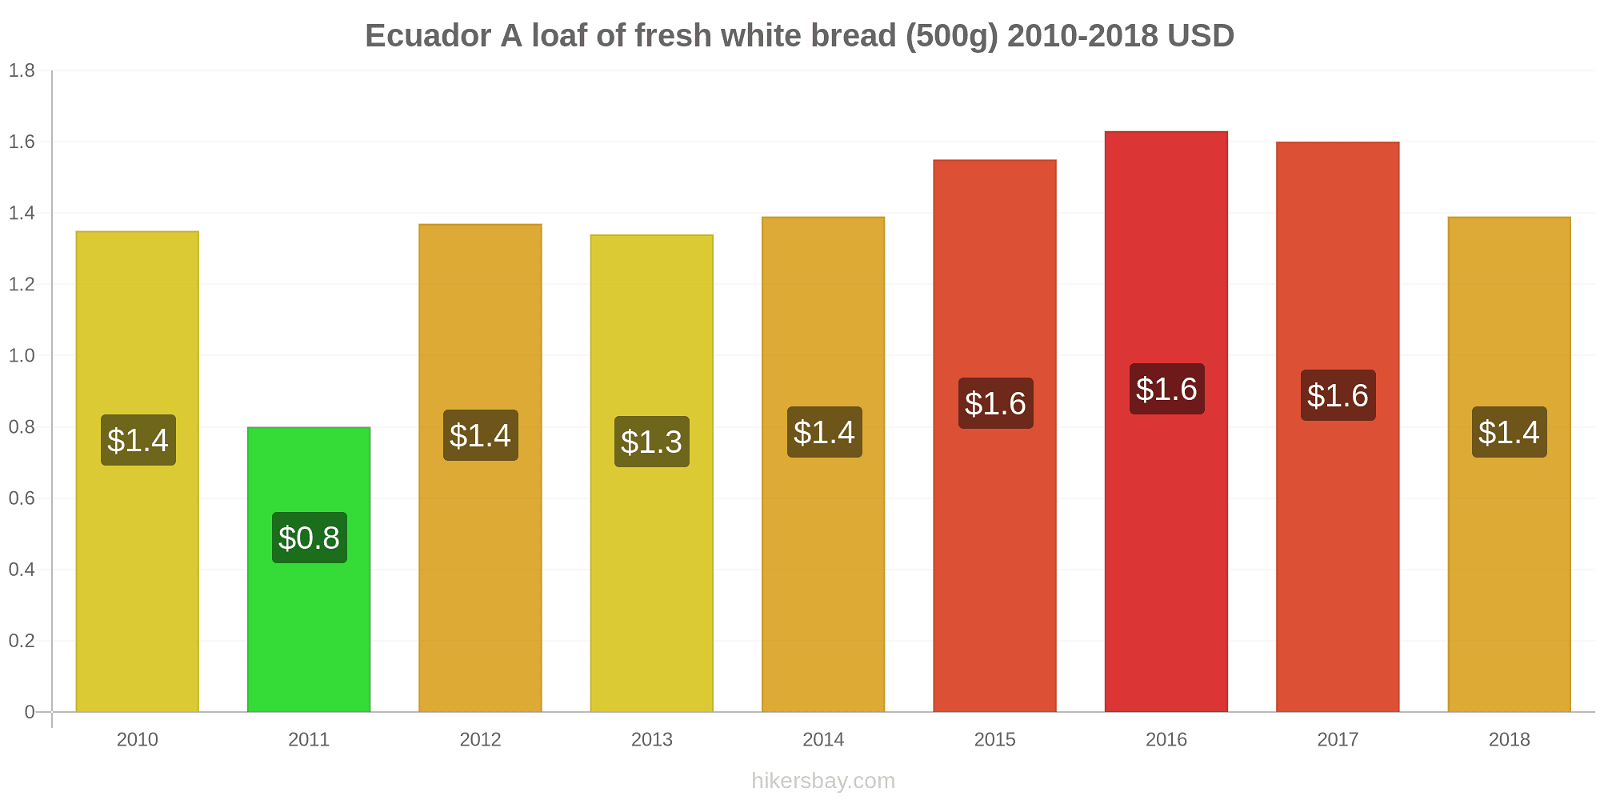 Ecuador price changes A loaf of fresh white bread (500g) hikersbay.com